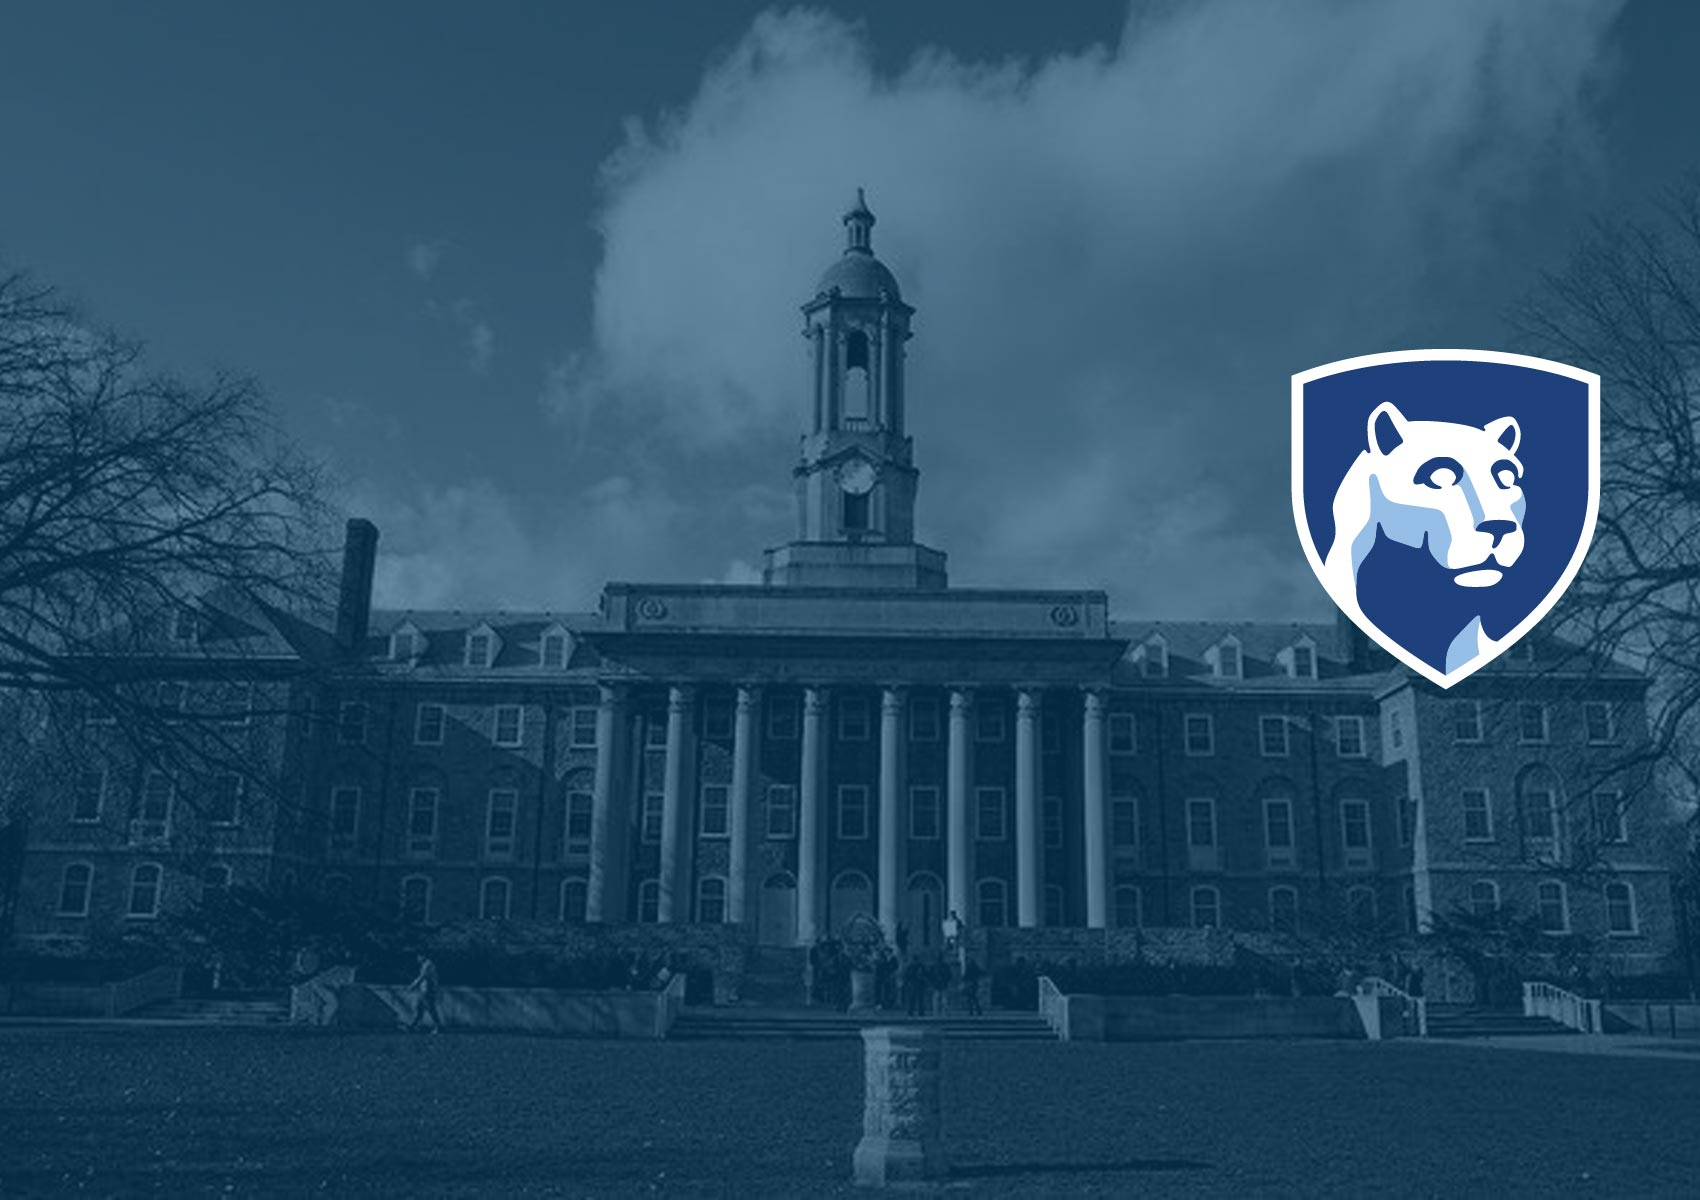 Penn State University uses Optigo's Visual BACnet to monitor their building networks